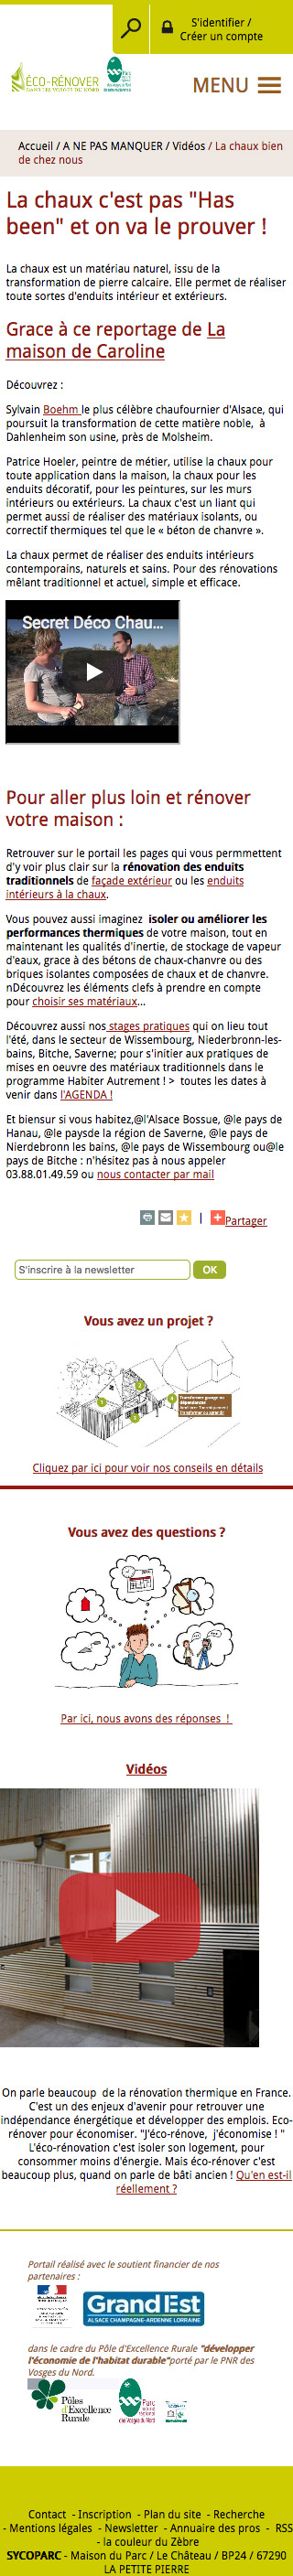 Exemple d'article sur mobile